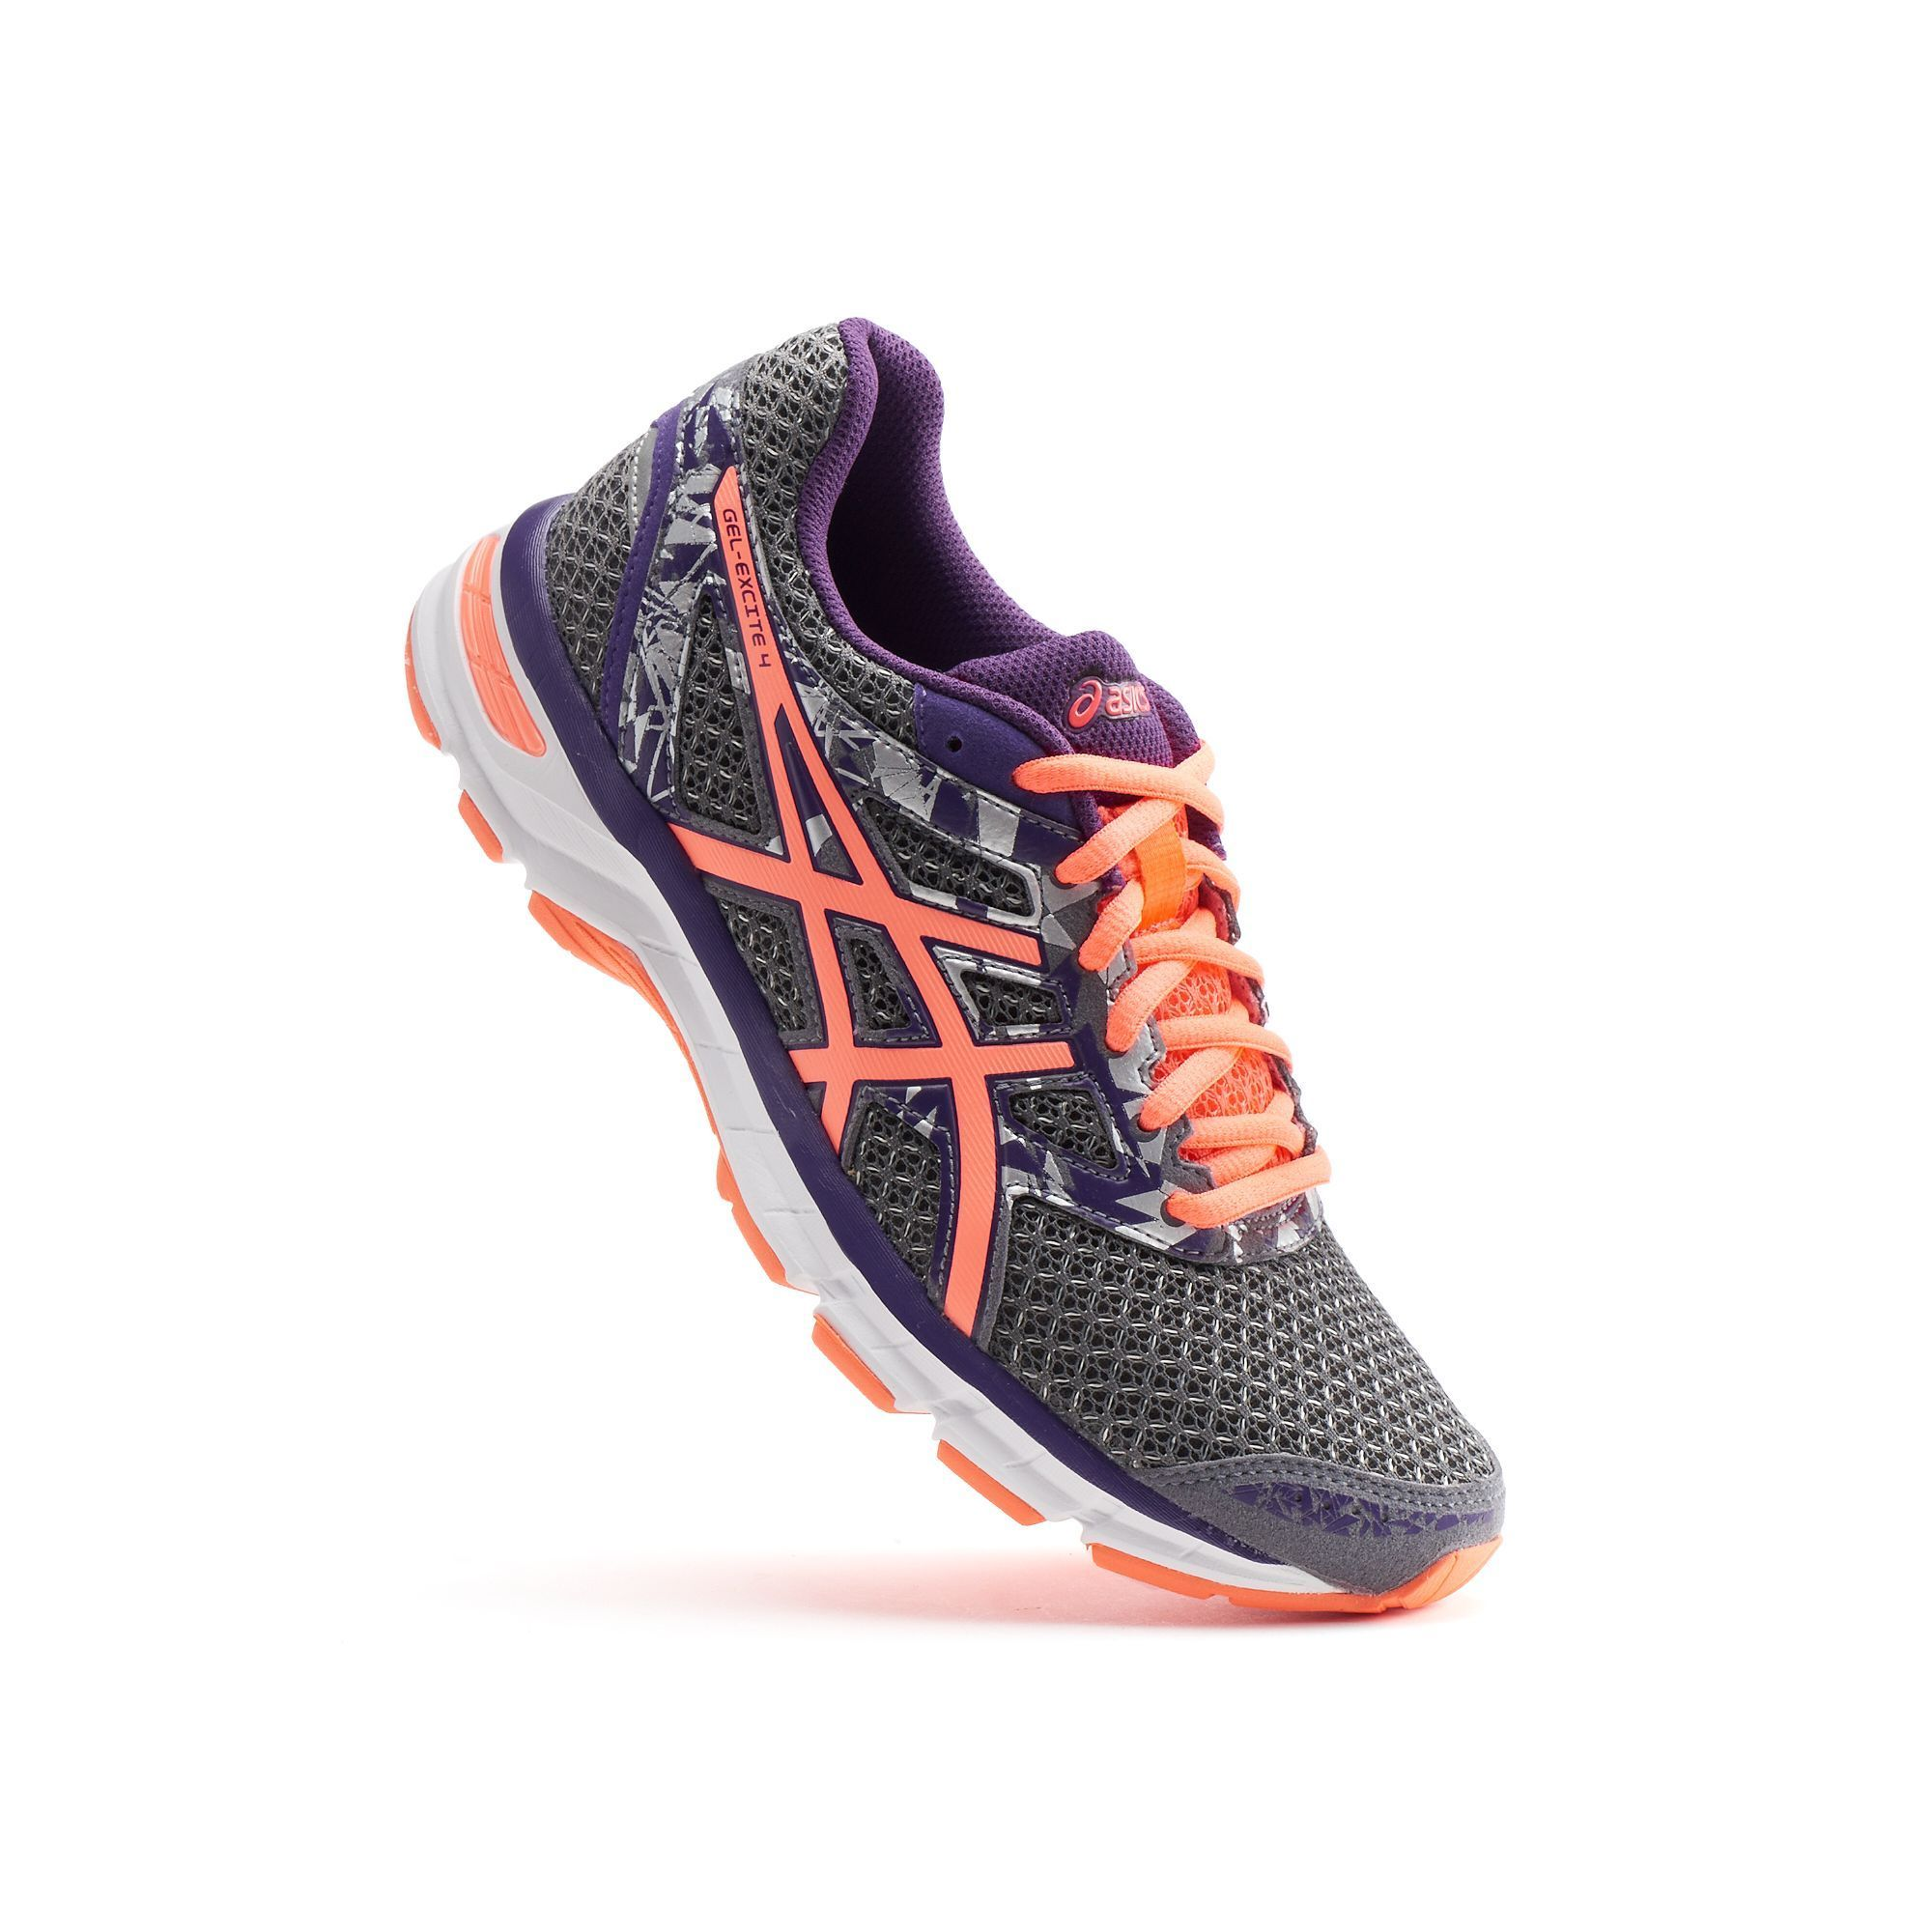 asics running shoes 9.5